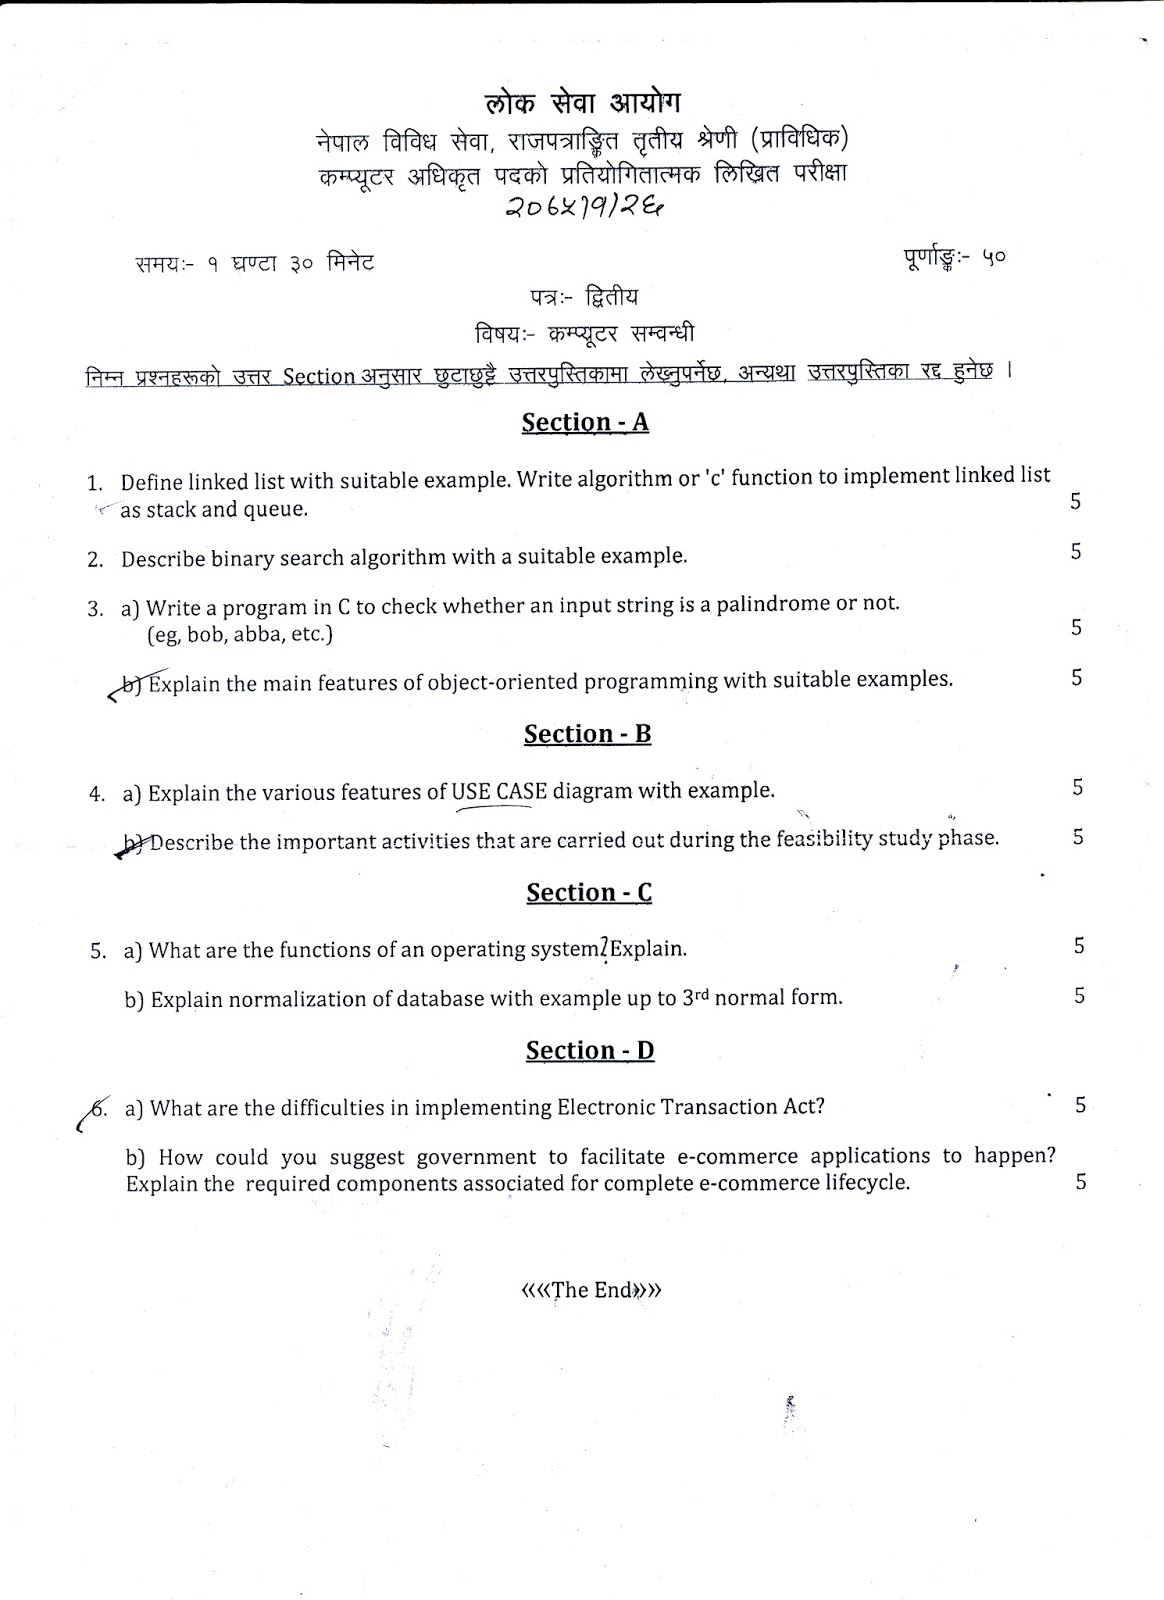 Computer Officer / IT Officer Paper Second 2075-01-26